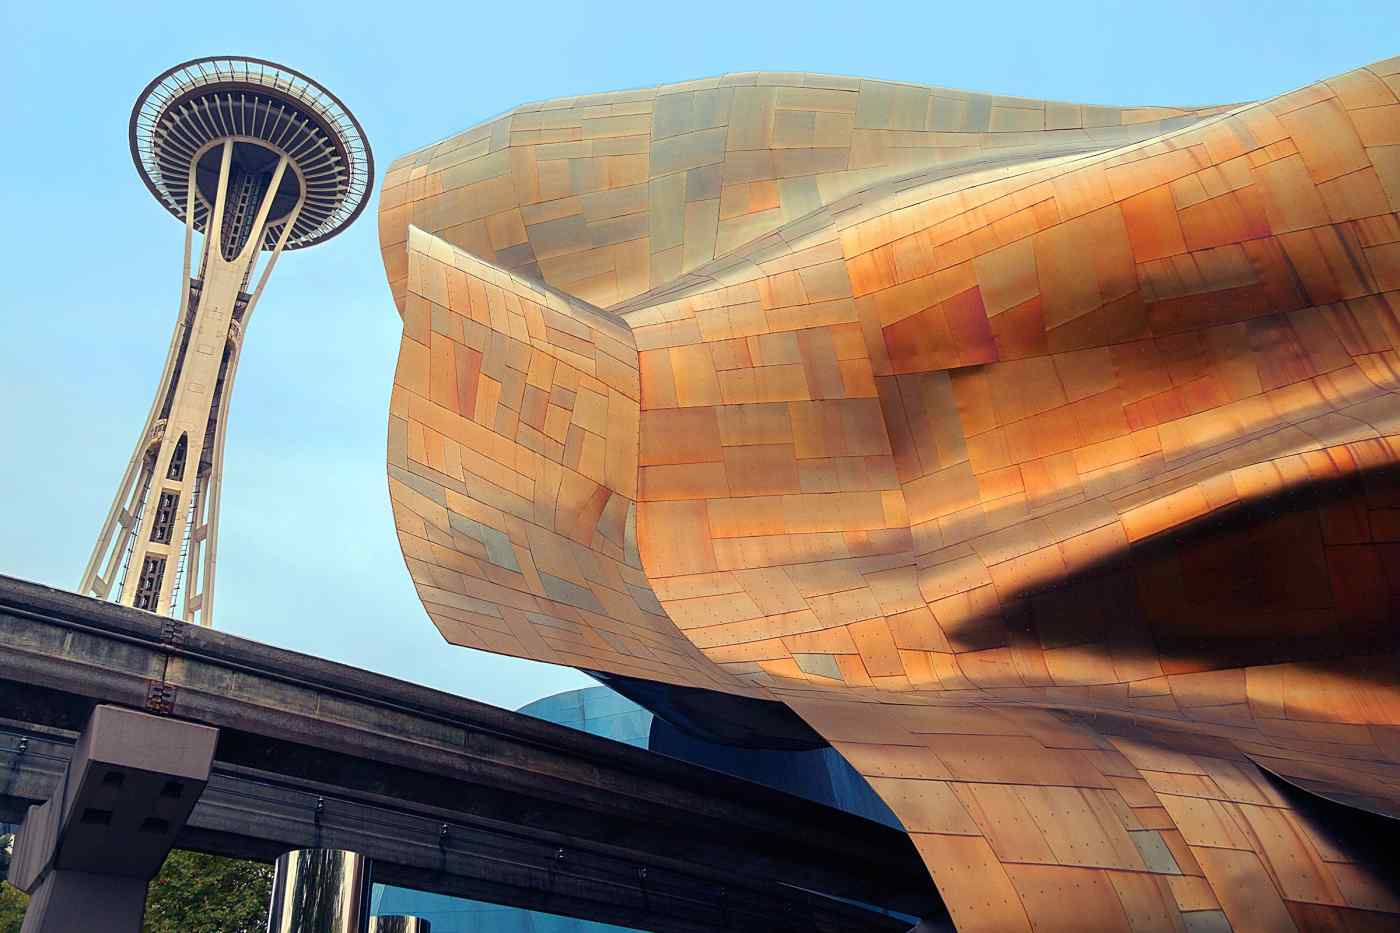 The Frank Gehry-designed Museum of Pop Culture